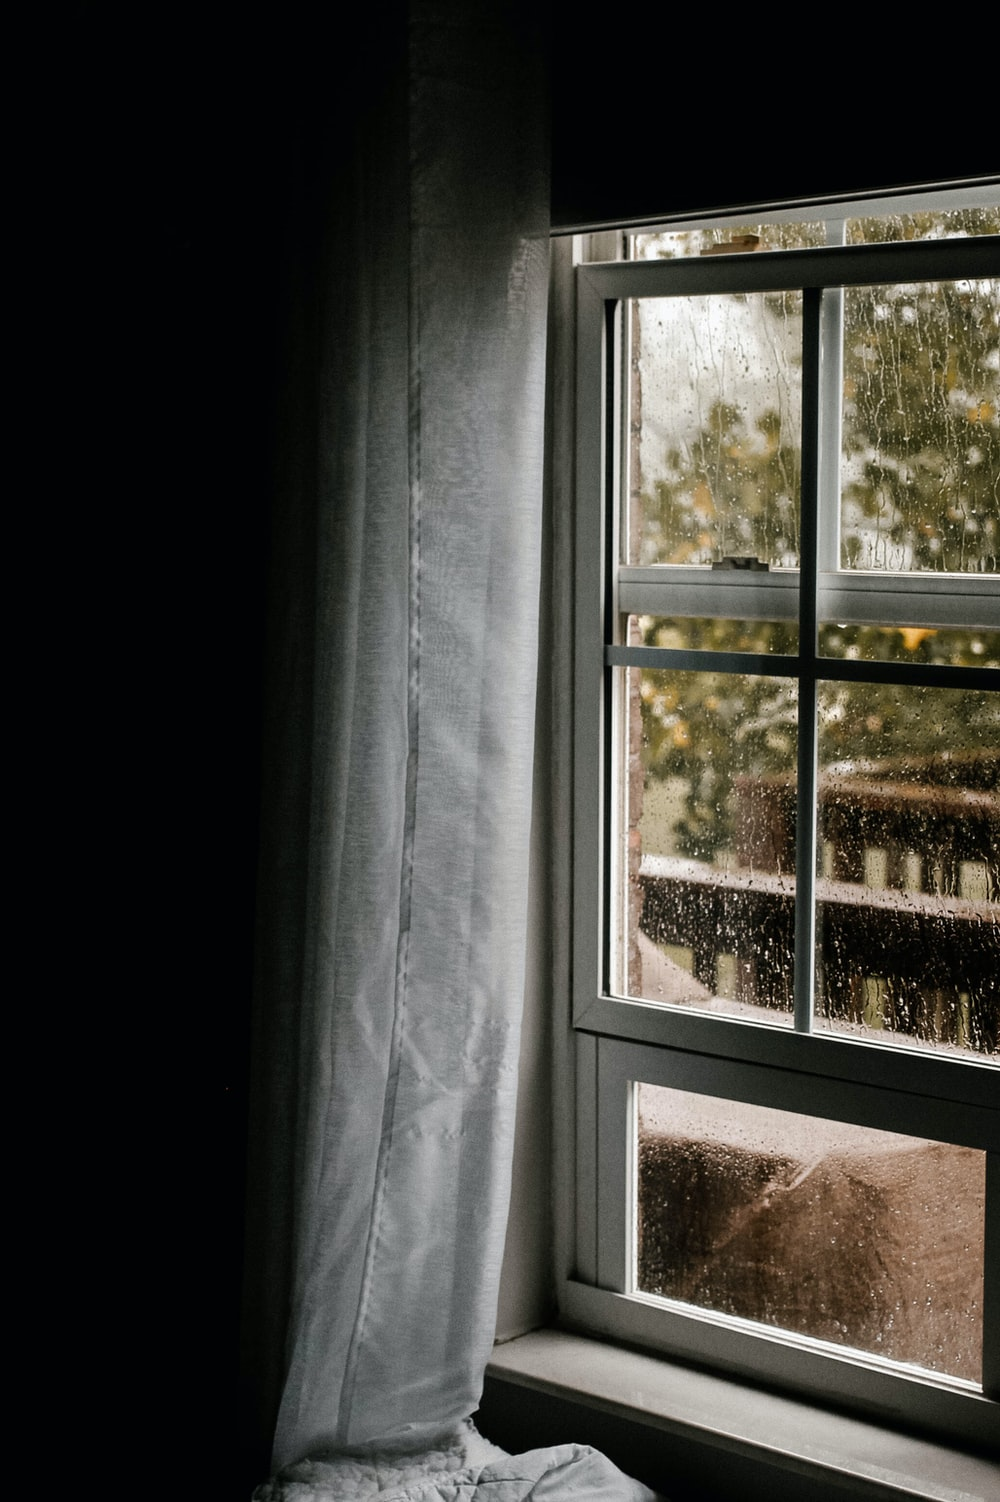 water dew on clear glass sliding window during daytime